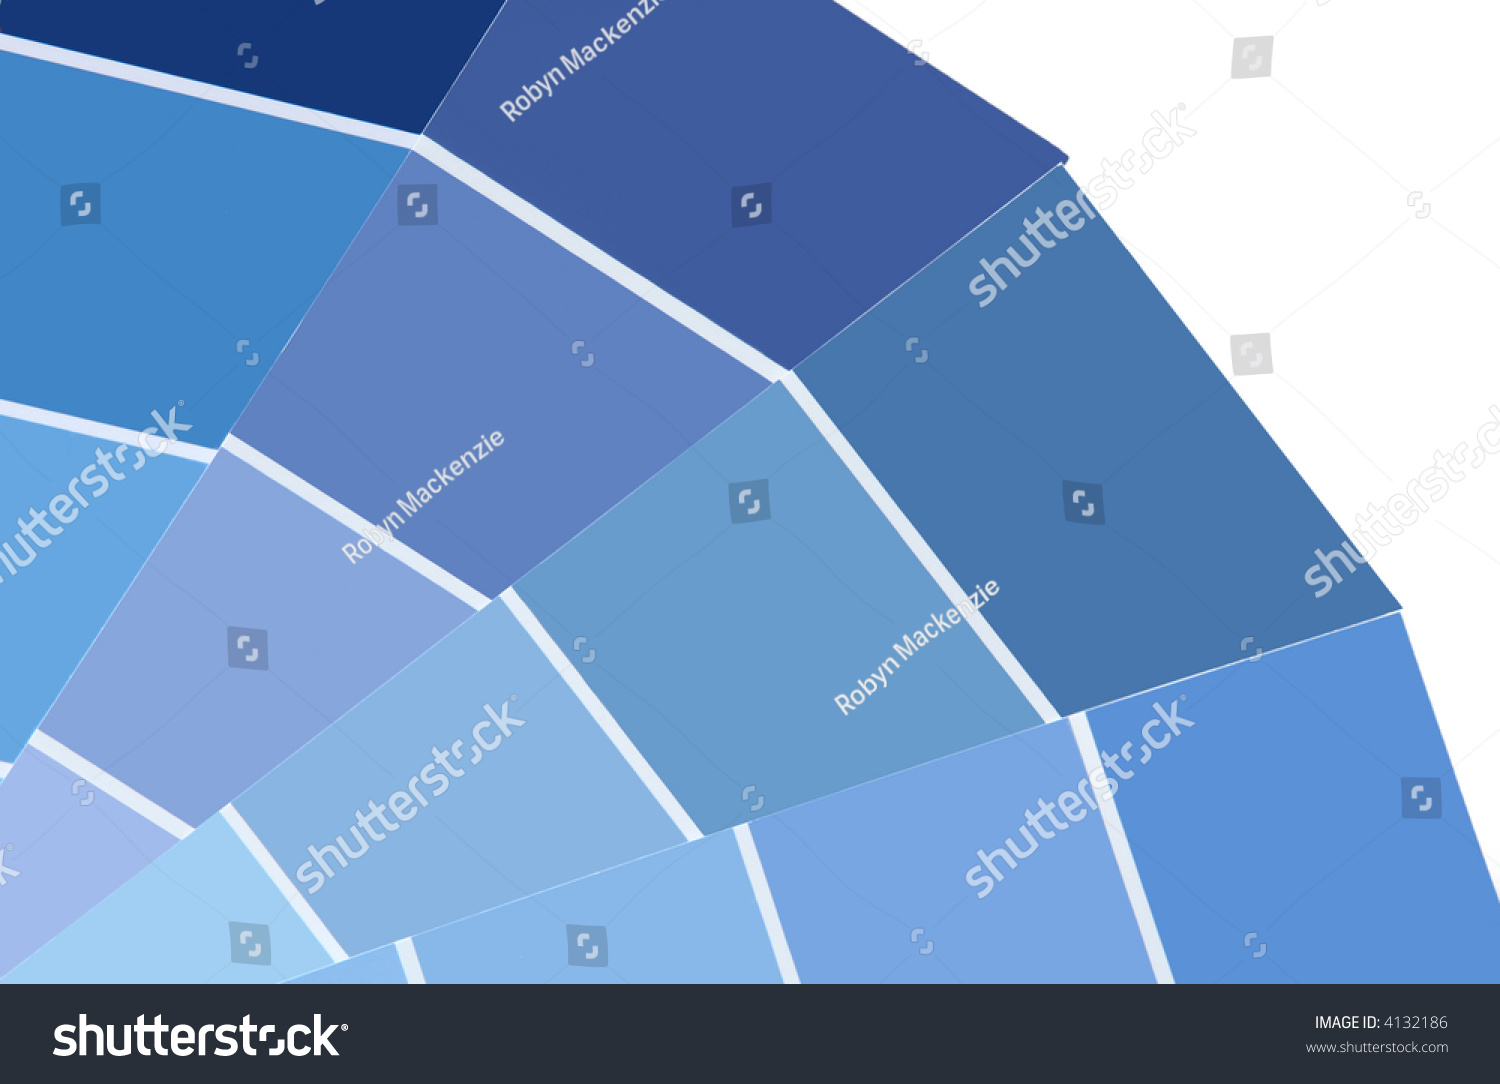 Shades Of Blue Paint Shades Blue Paint Cards Variety Blue Stock Photo 4132186